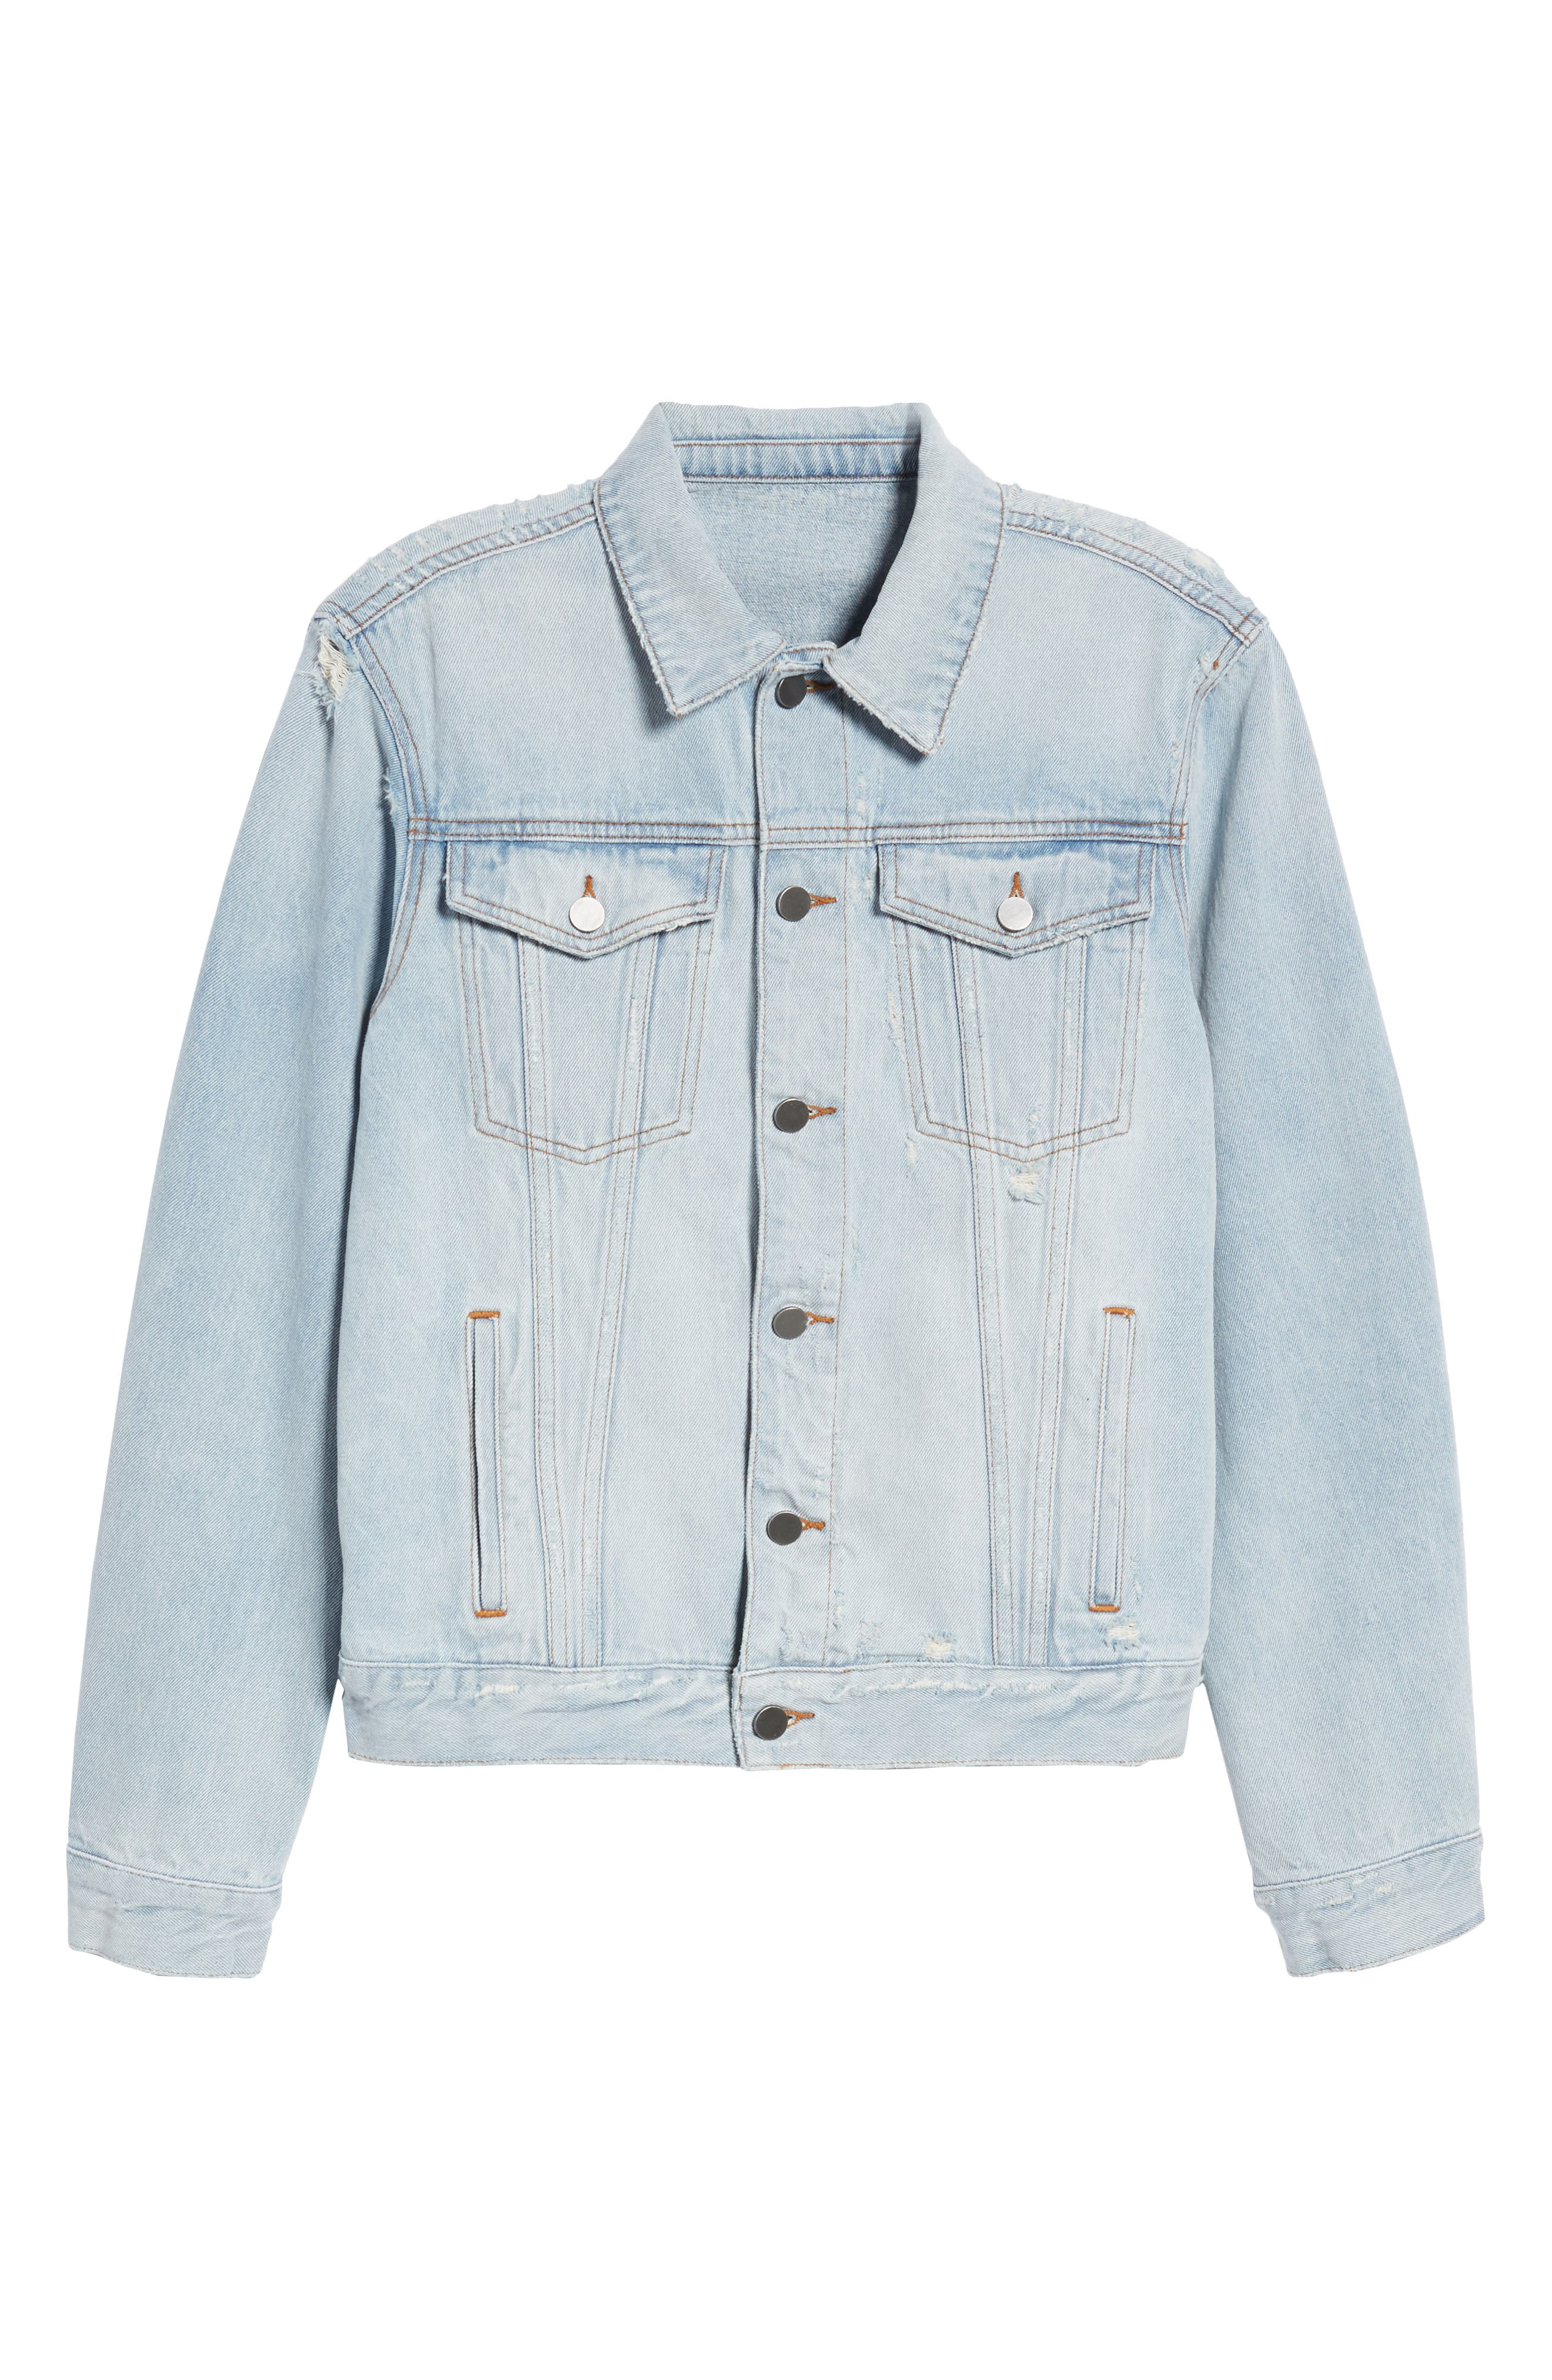 Destroyed Trucker Jacket,                             Alternate thumbnail 6, color,                             Light Blue Wash